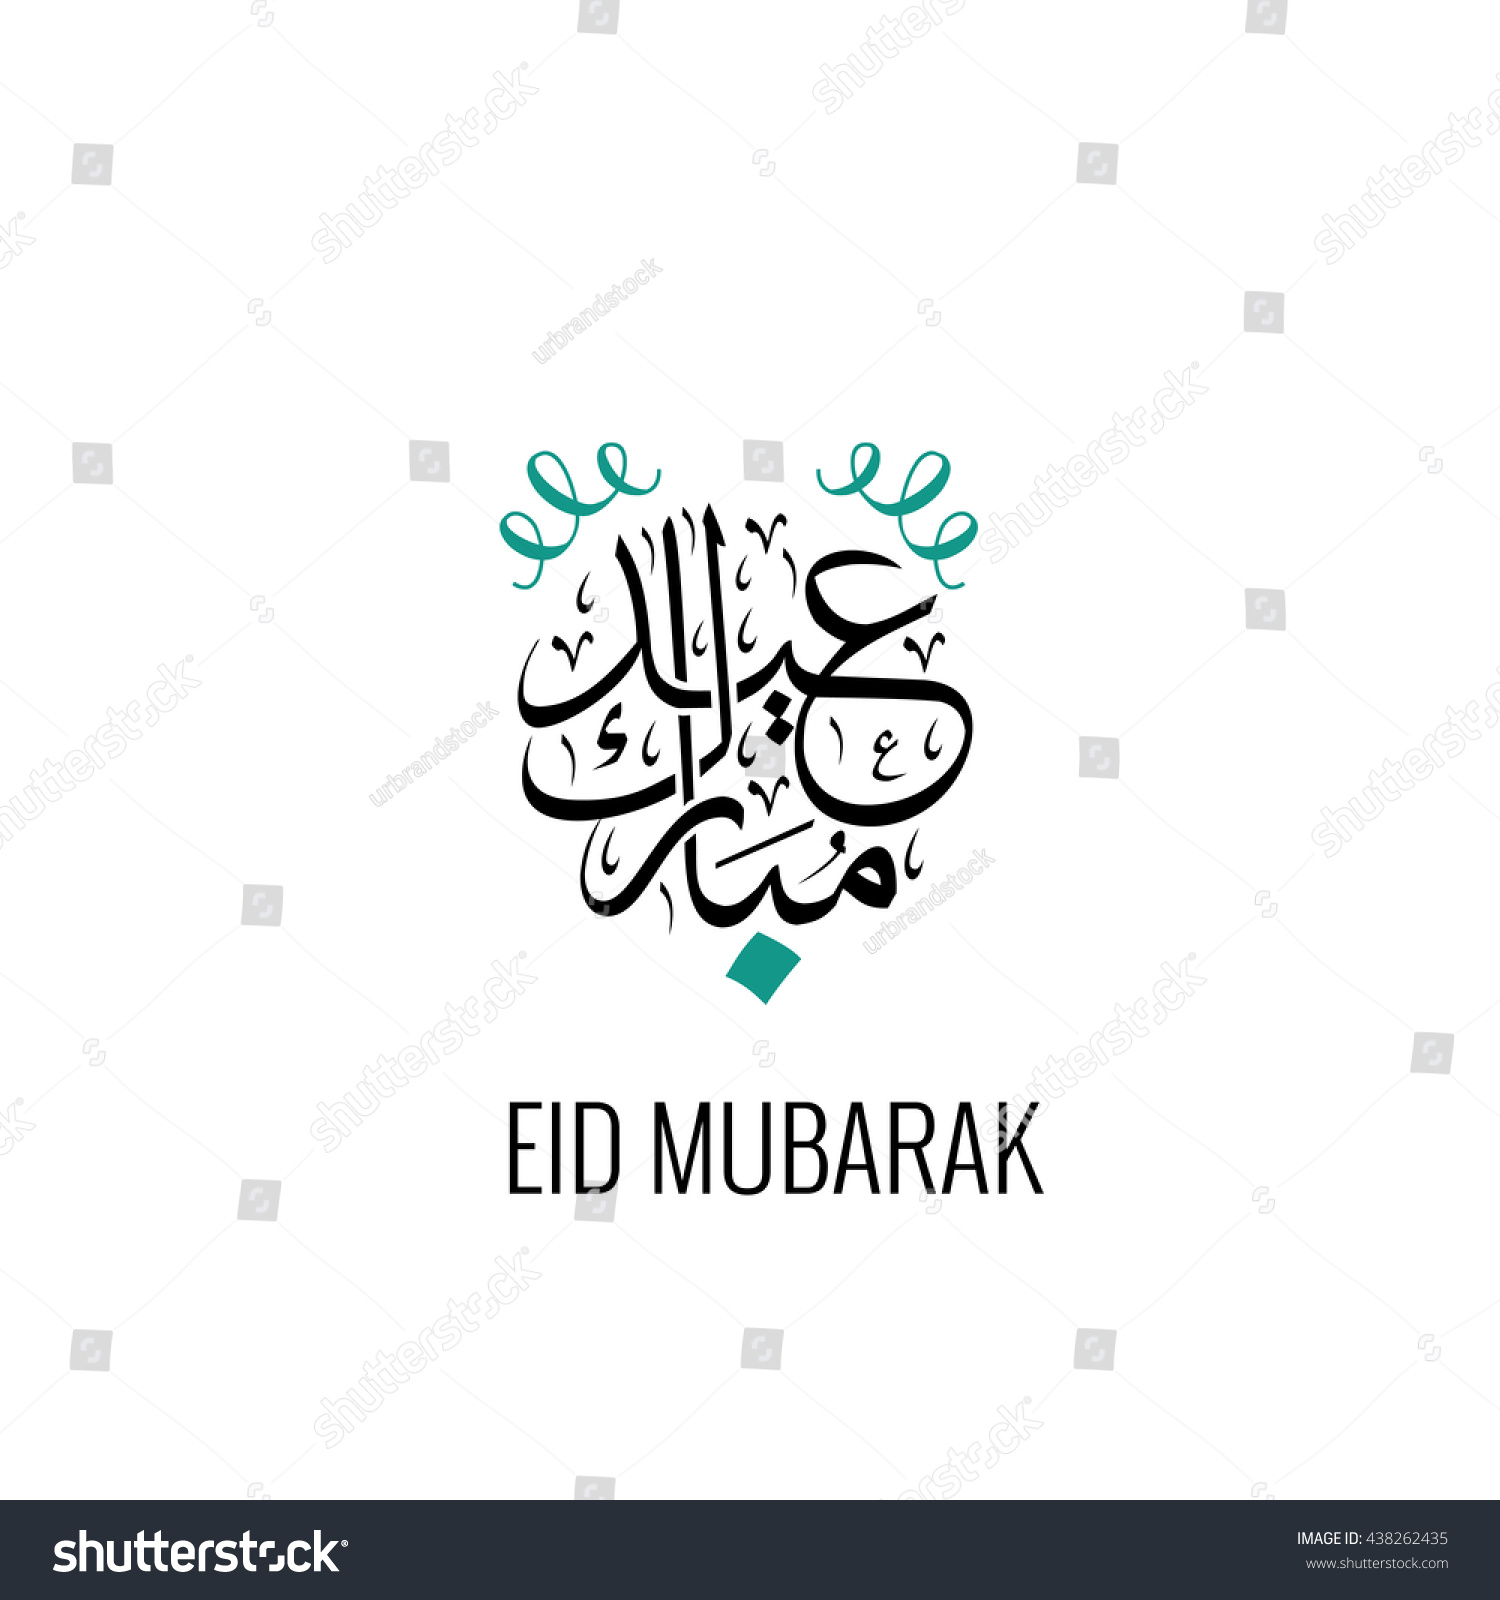 Eid Mubarak Traditional Arabic Calligraphy Design Stock ...